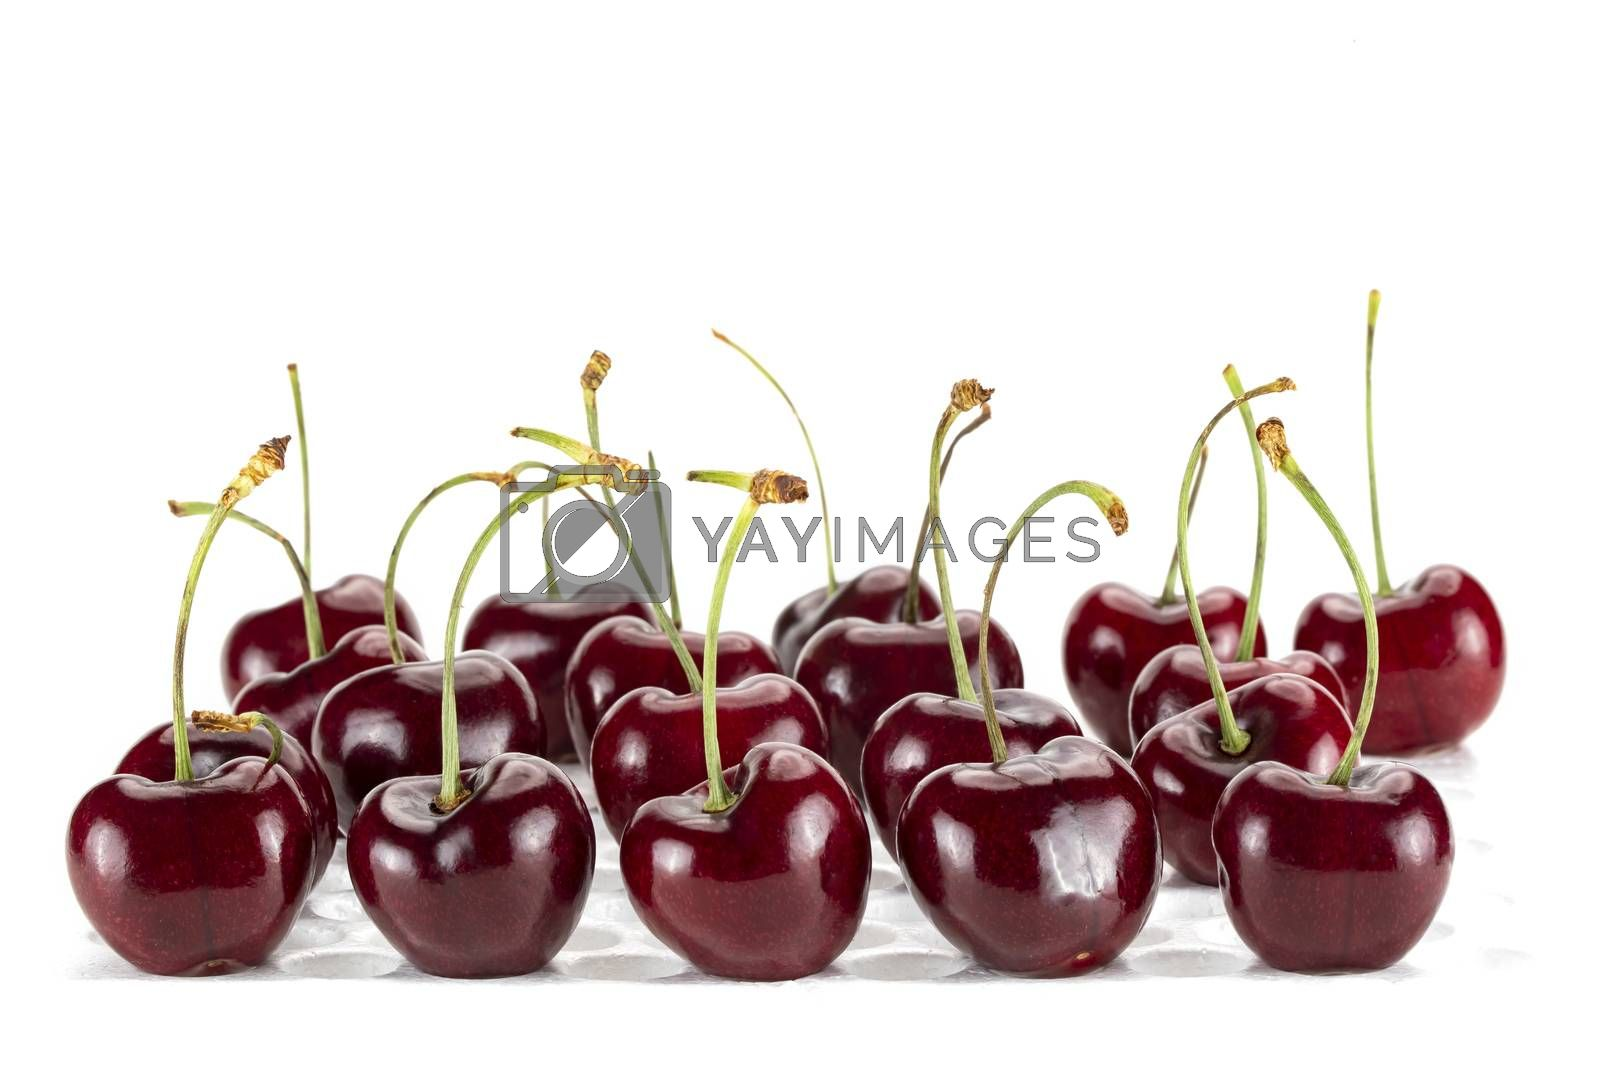 Rows and columns of fresh cherries. Isolated on white background.